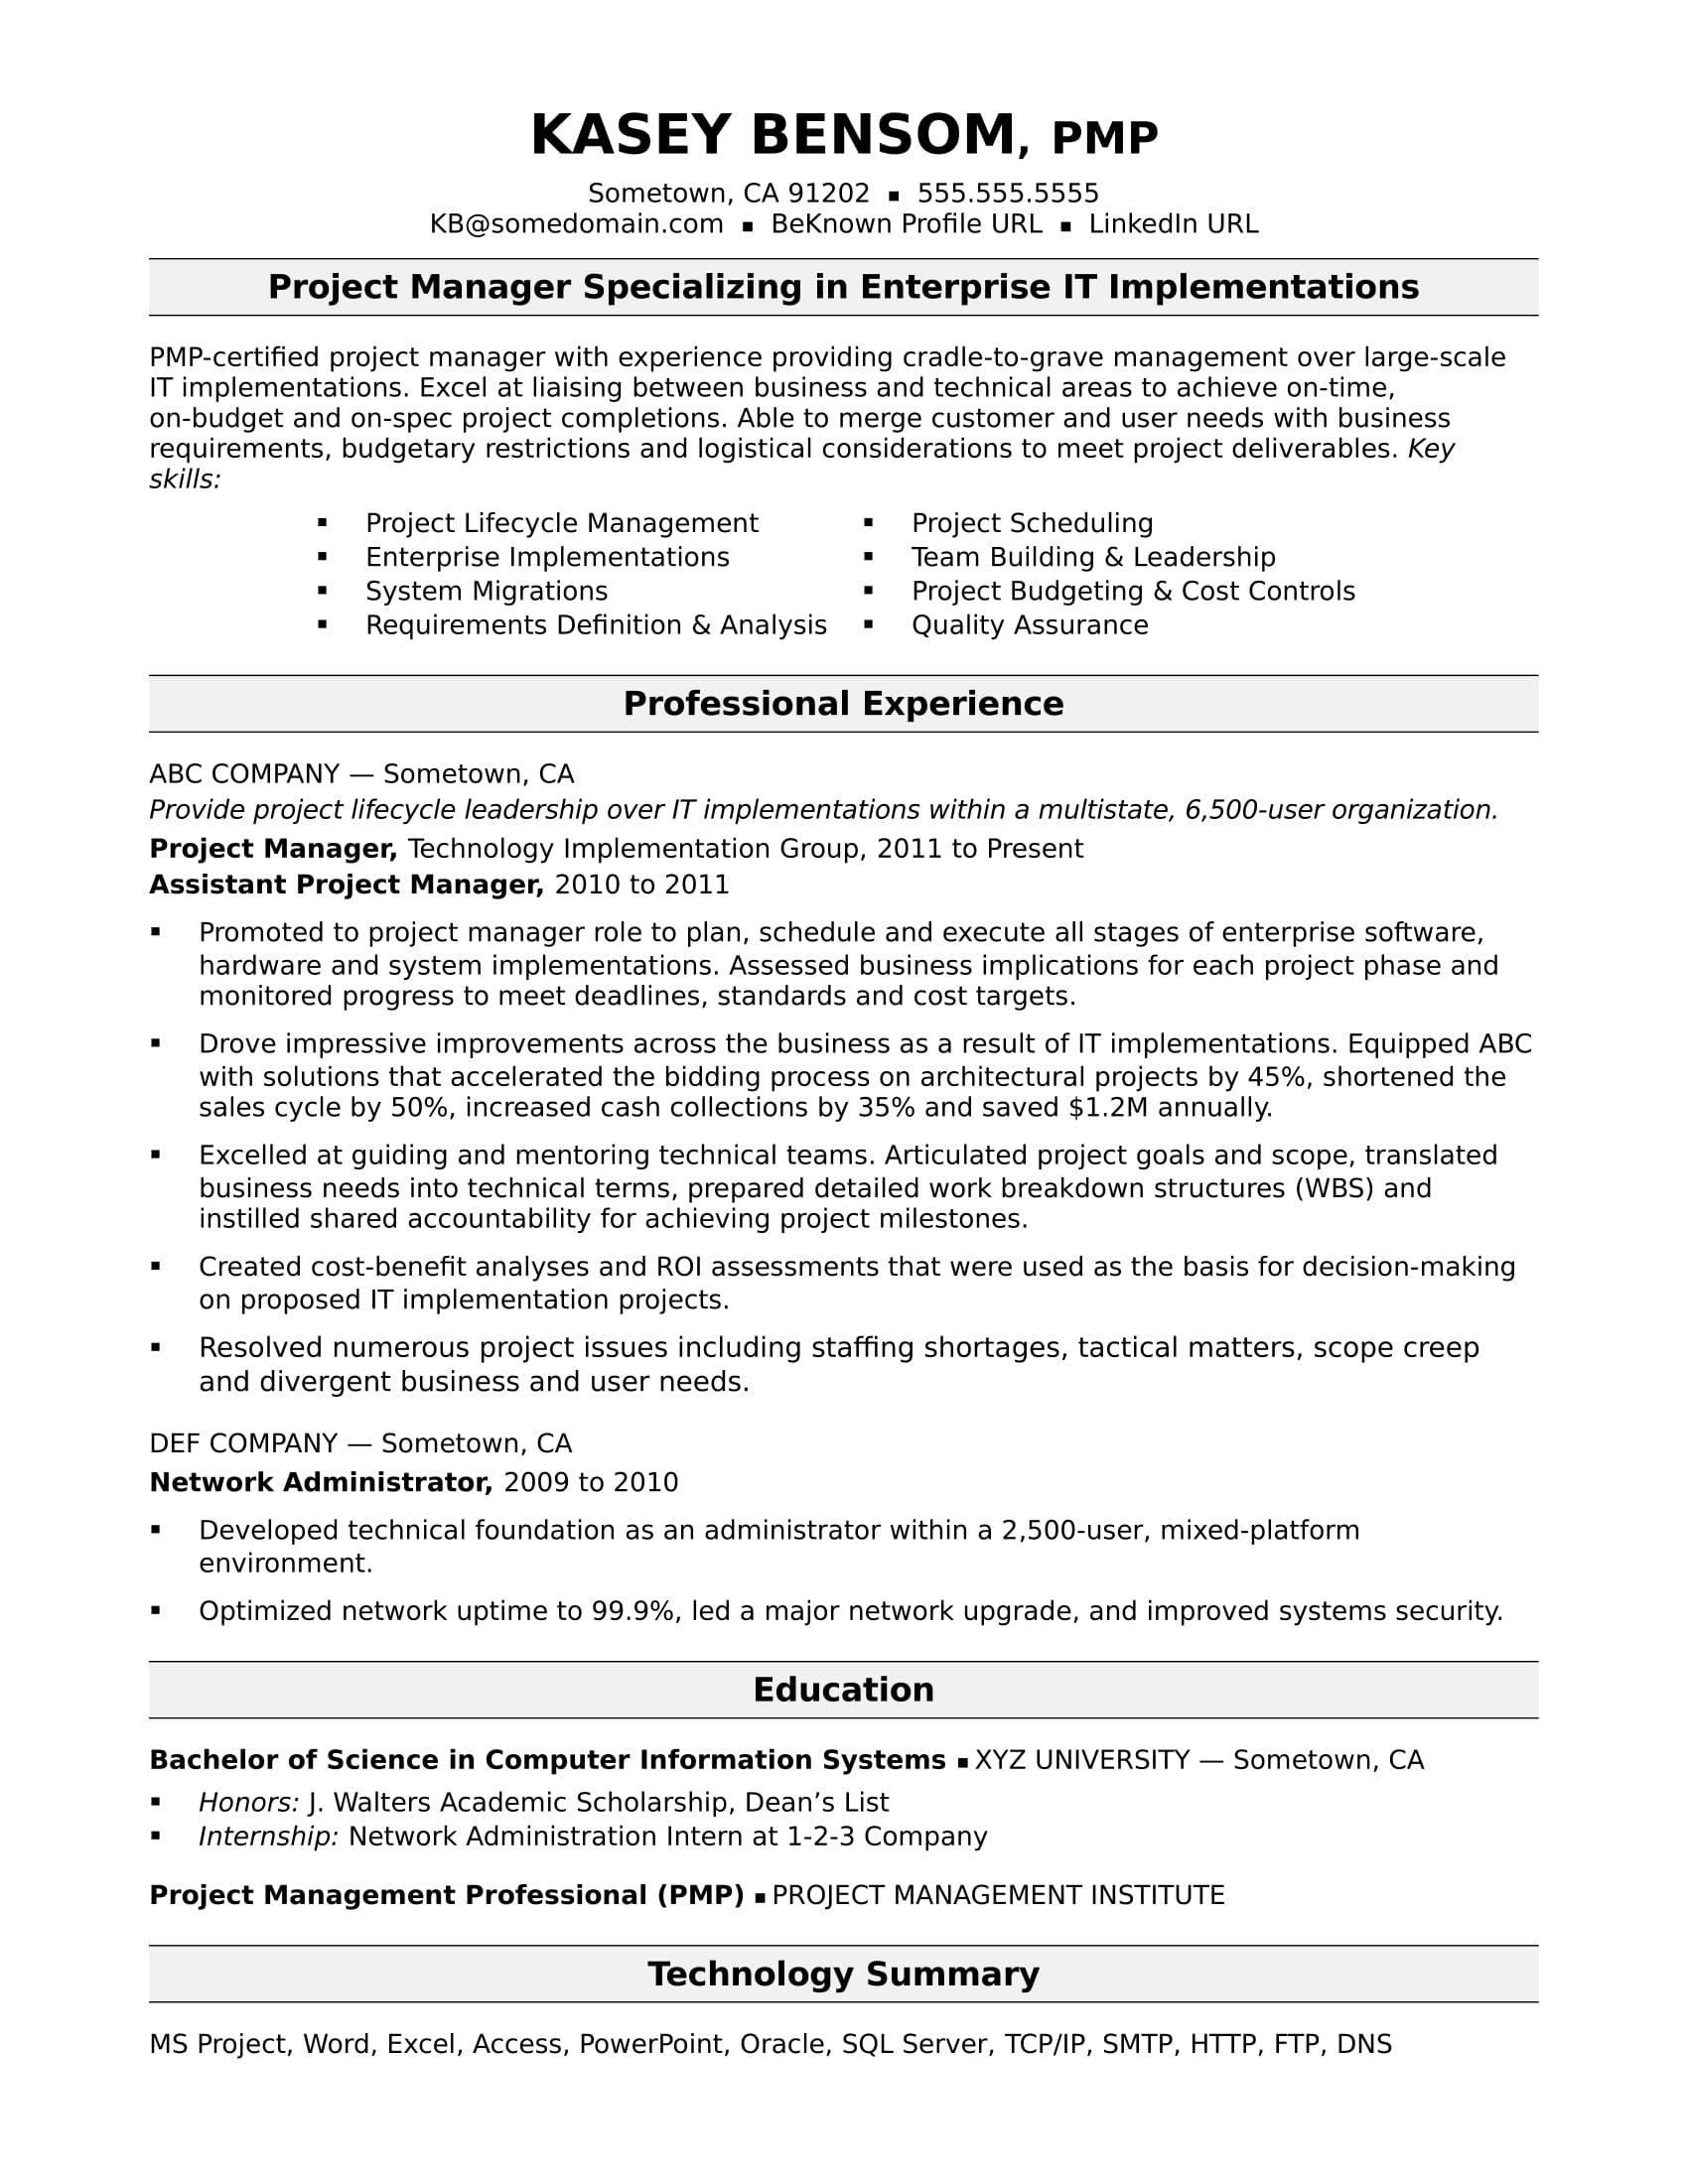 sample resume for midlevel it project manager monster examples free loan coordinator fau Resume Project Manager Resume Examples Free